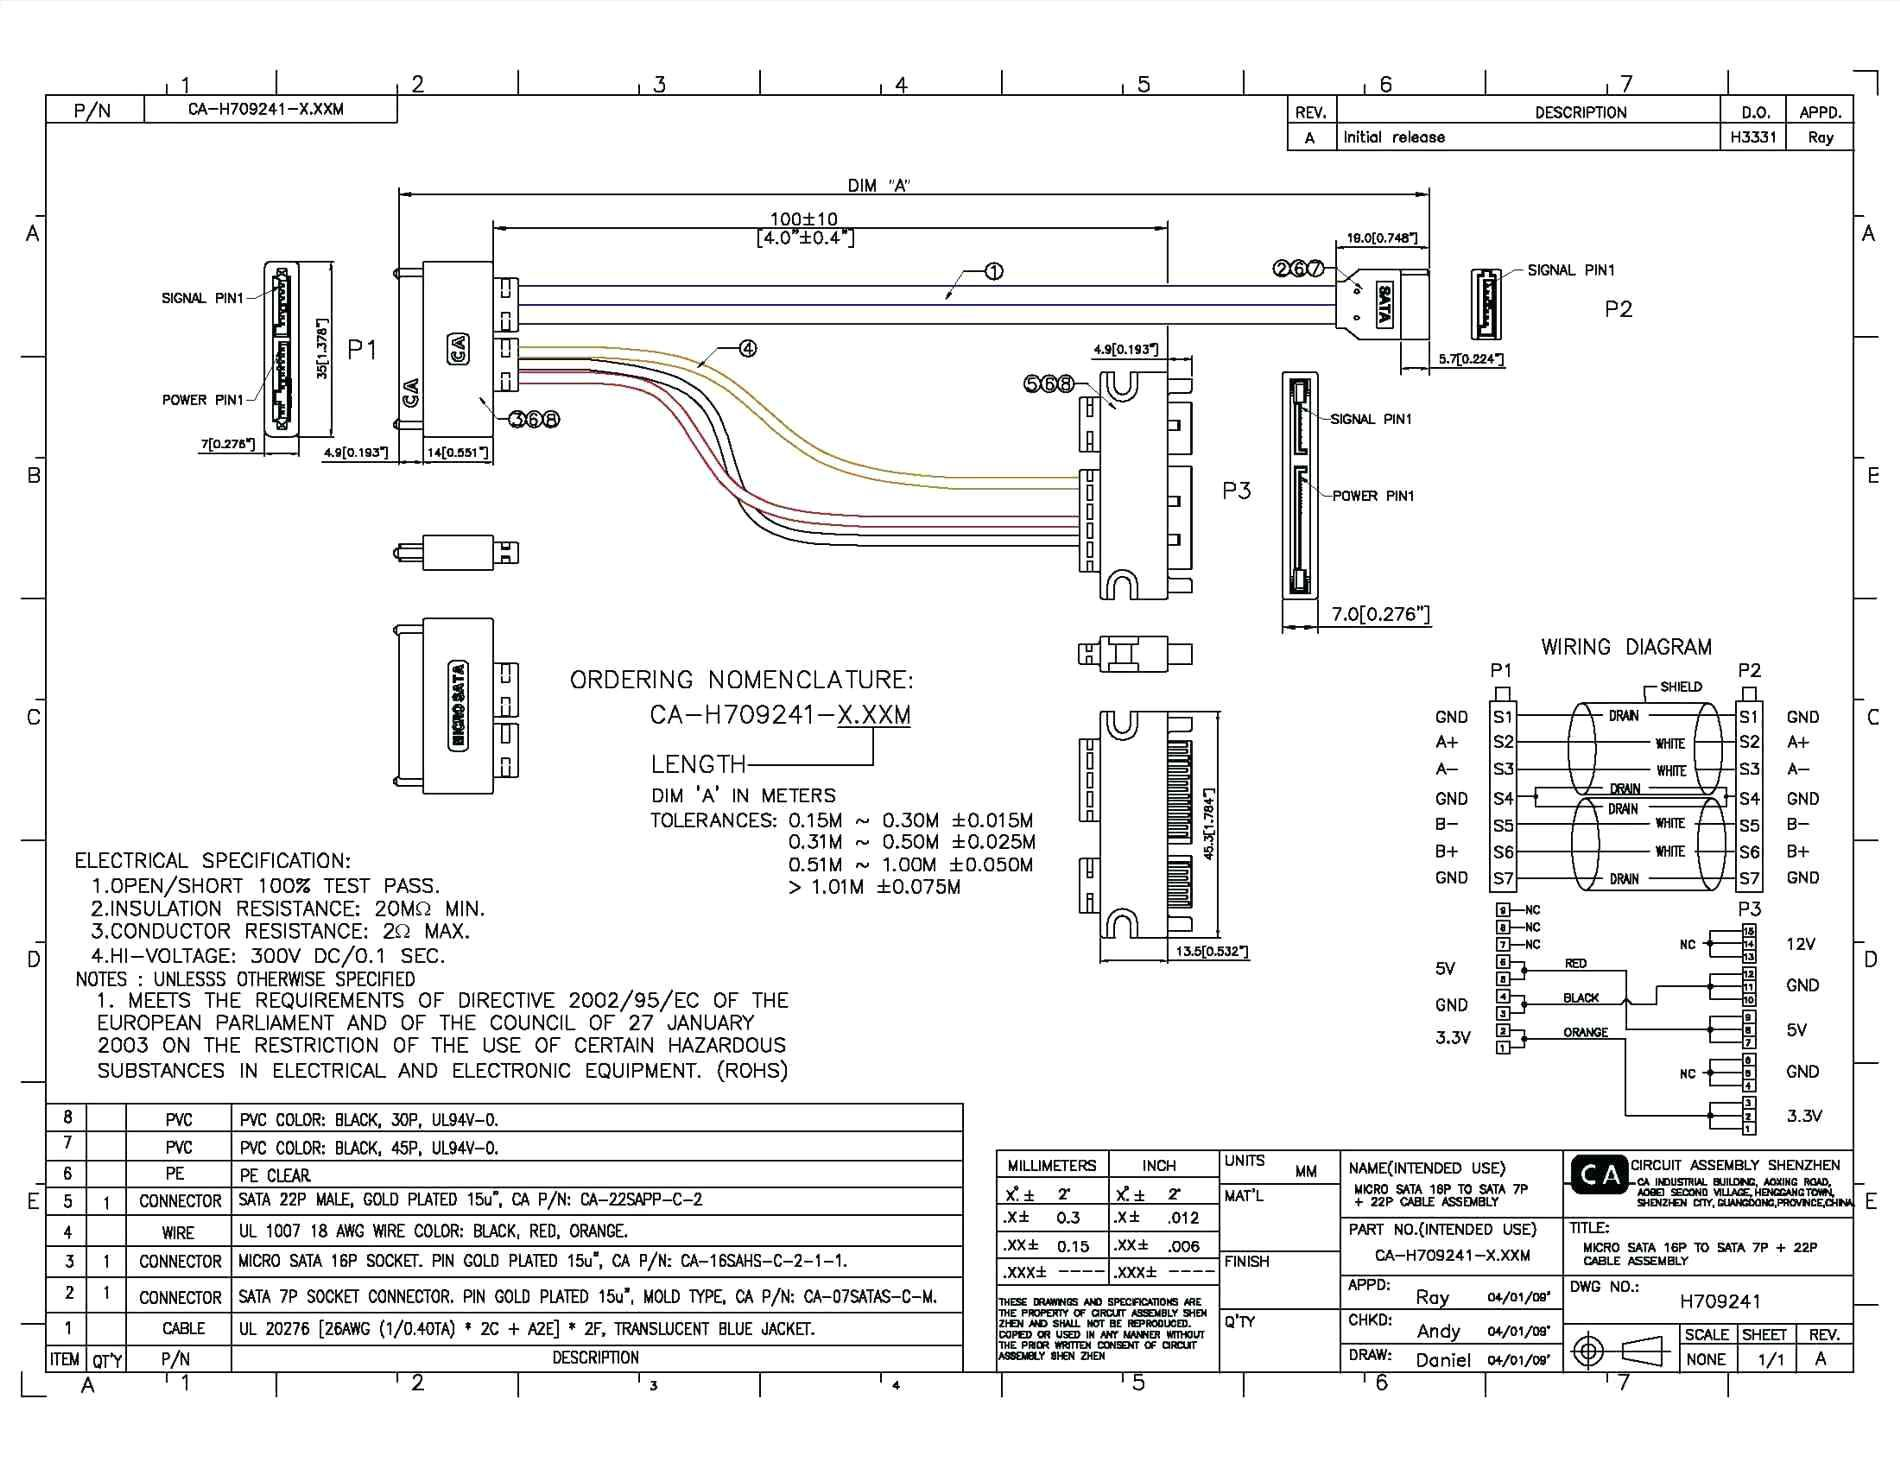 Sata To Usb Cable Wiring Diagram Copy Usb Serial Wiring Diagram I To Of Timing Port Cable Connection Usb Cable Computer Basics Laptop Repair